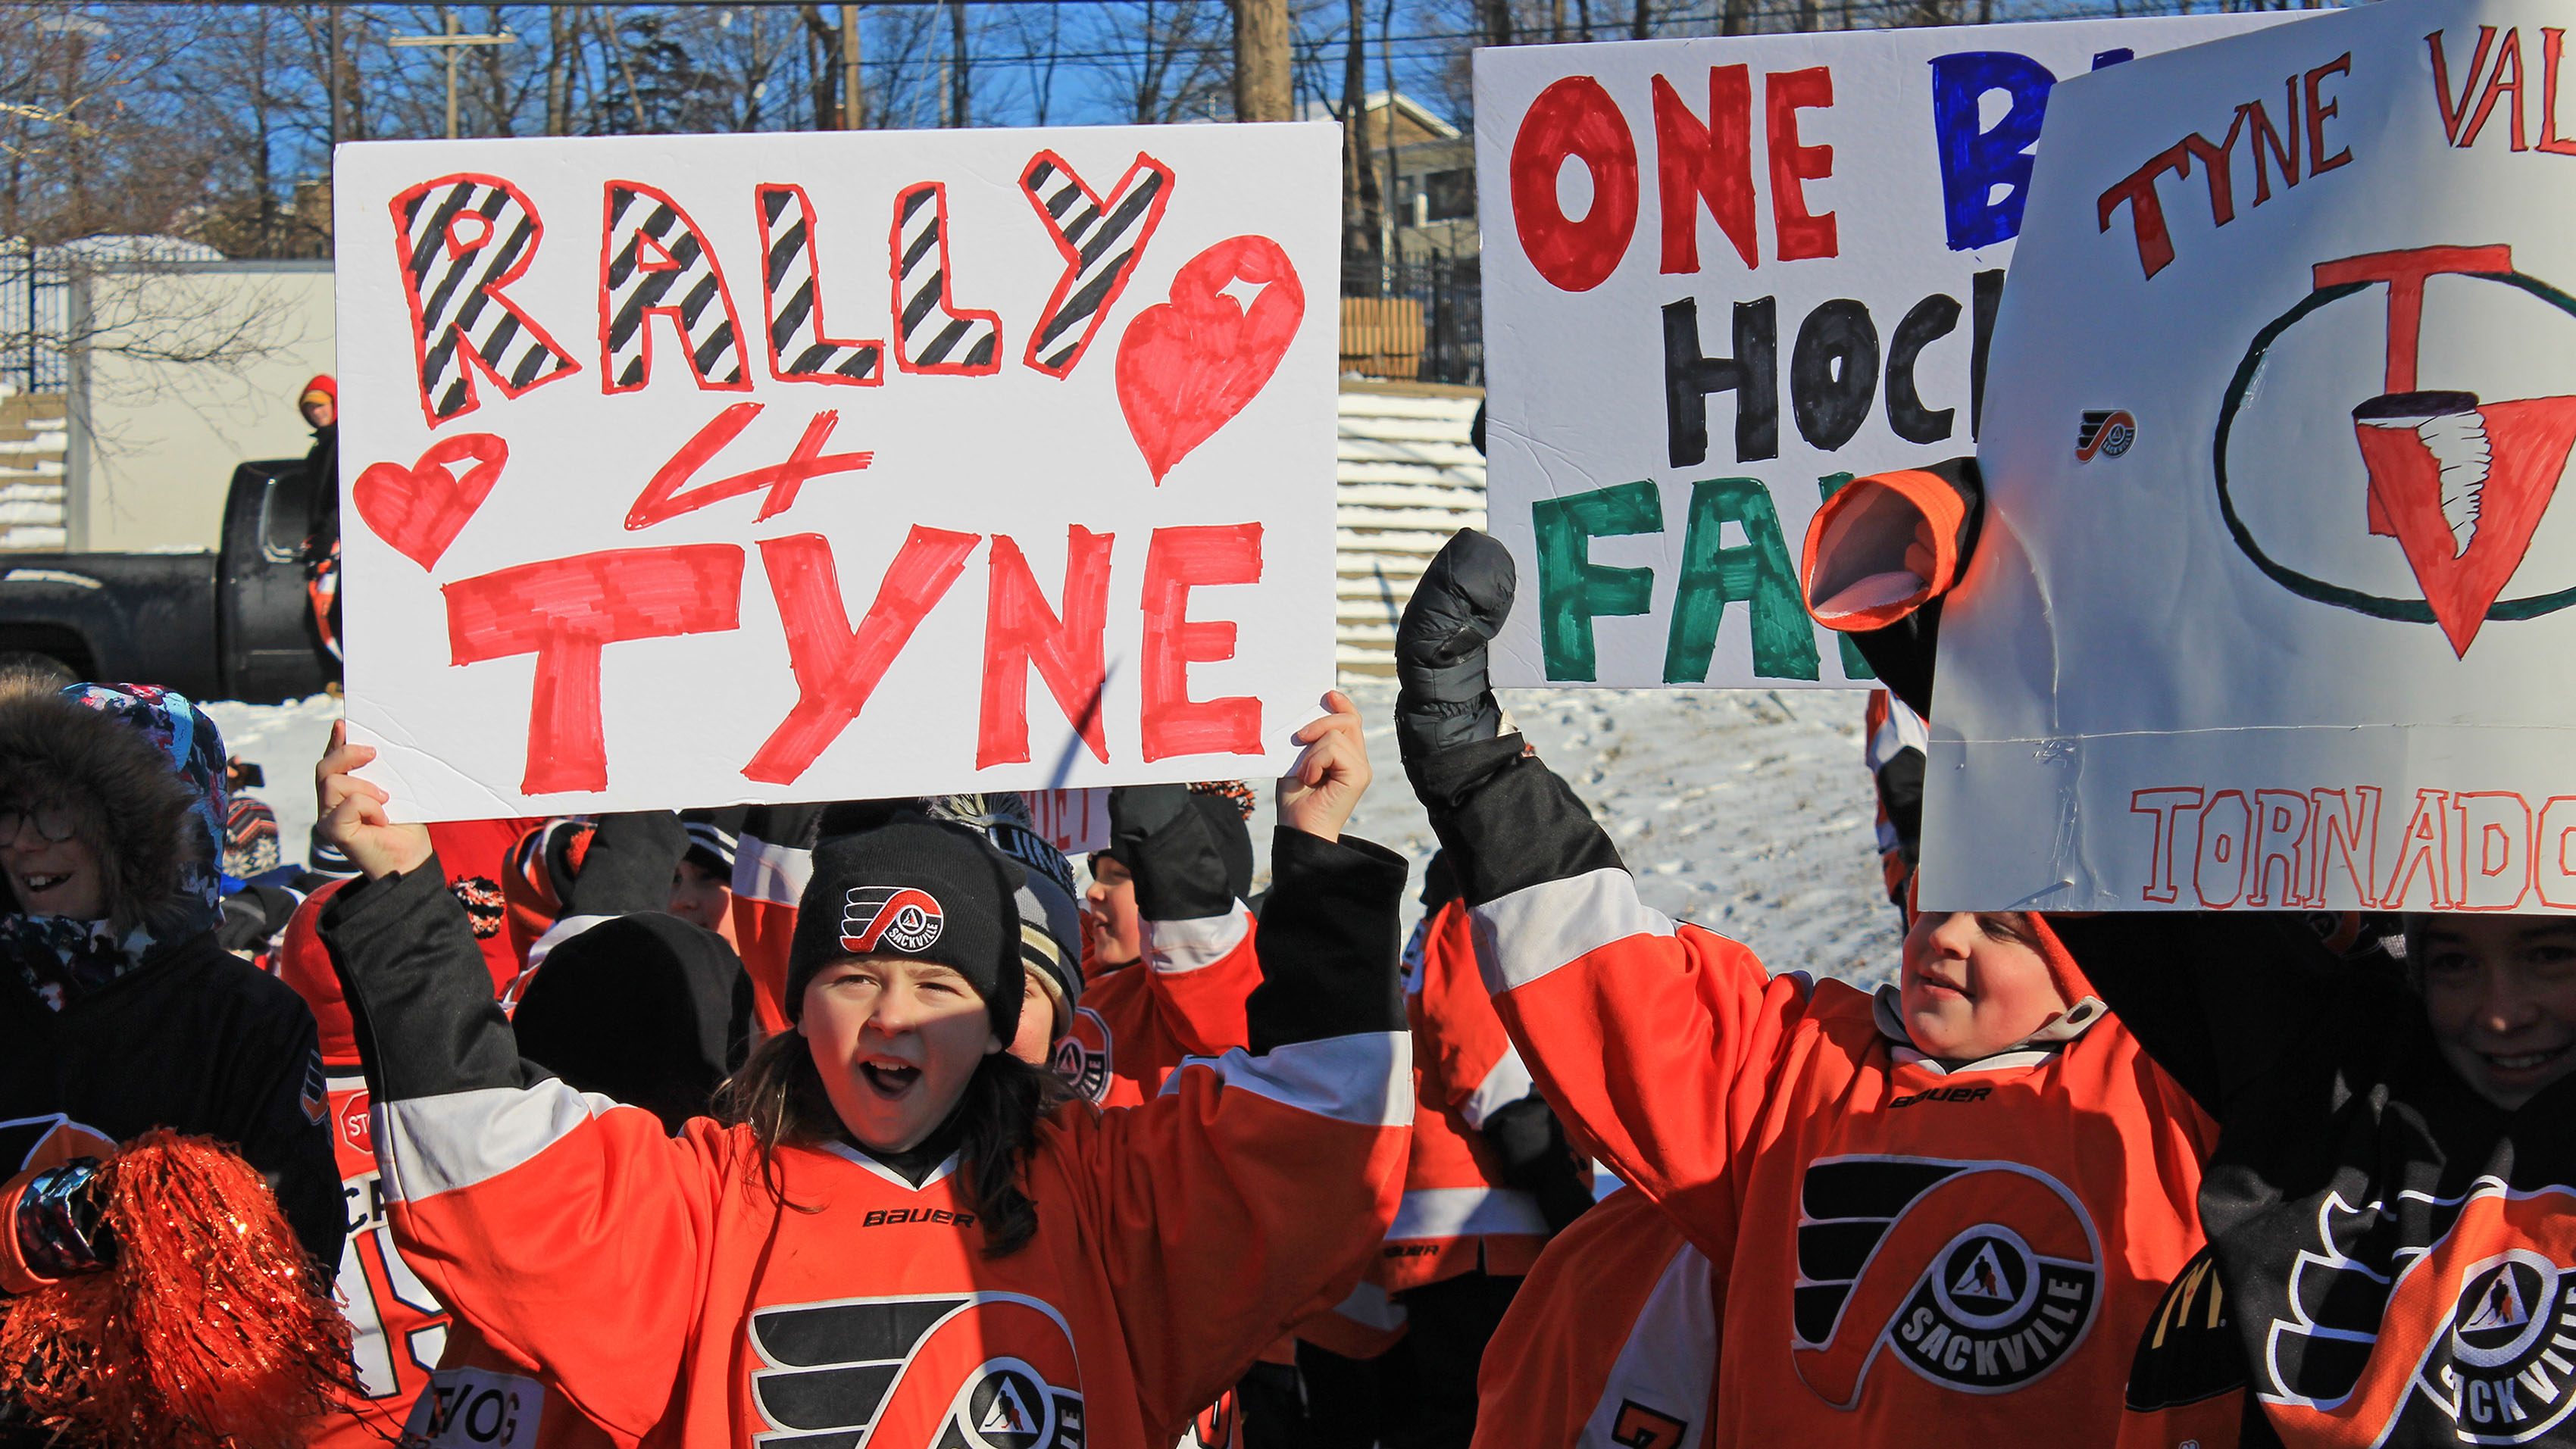 Wearing their team uniforms, hockey players from Sackville Minor Hockey and clubs in neighbouring communities showed up to the rally in full force.